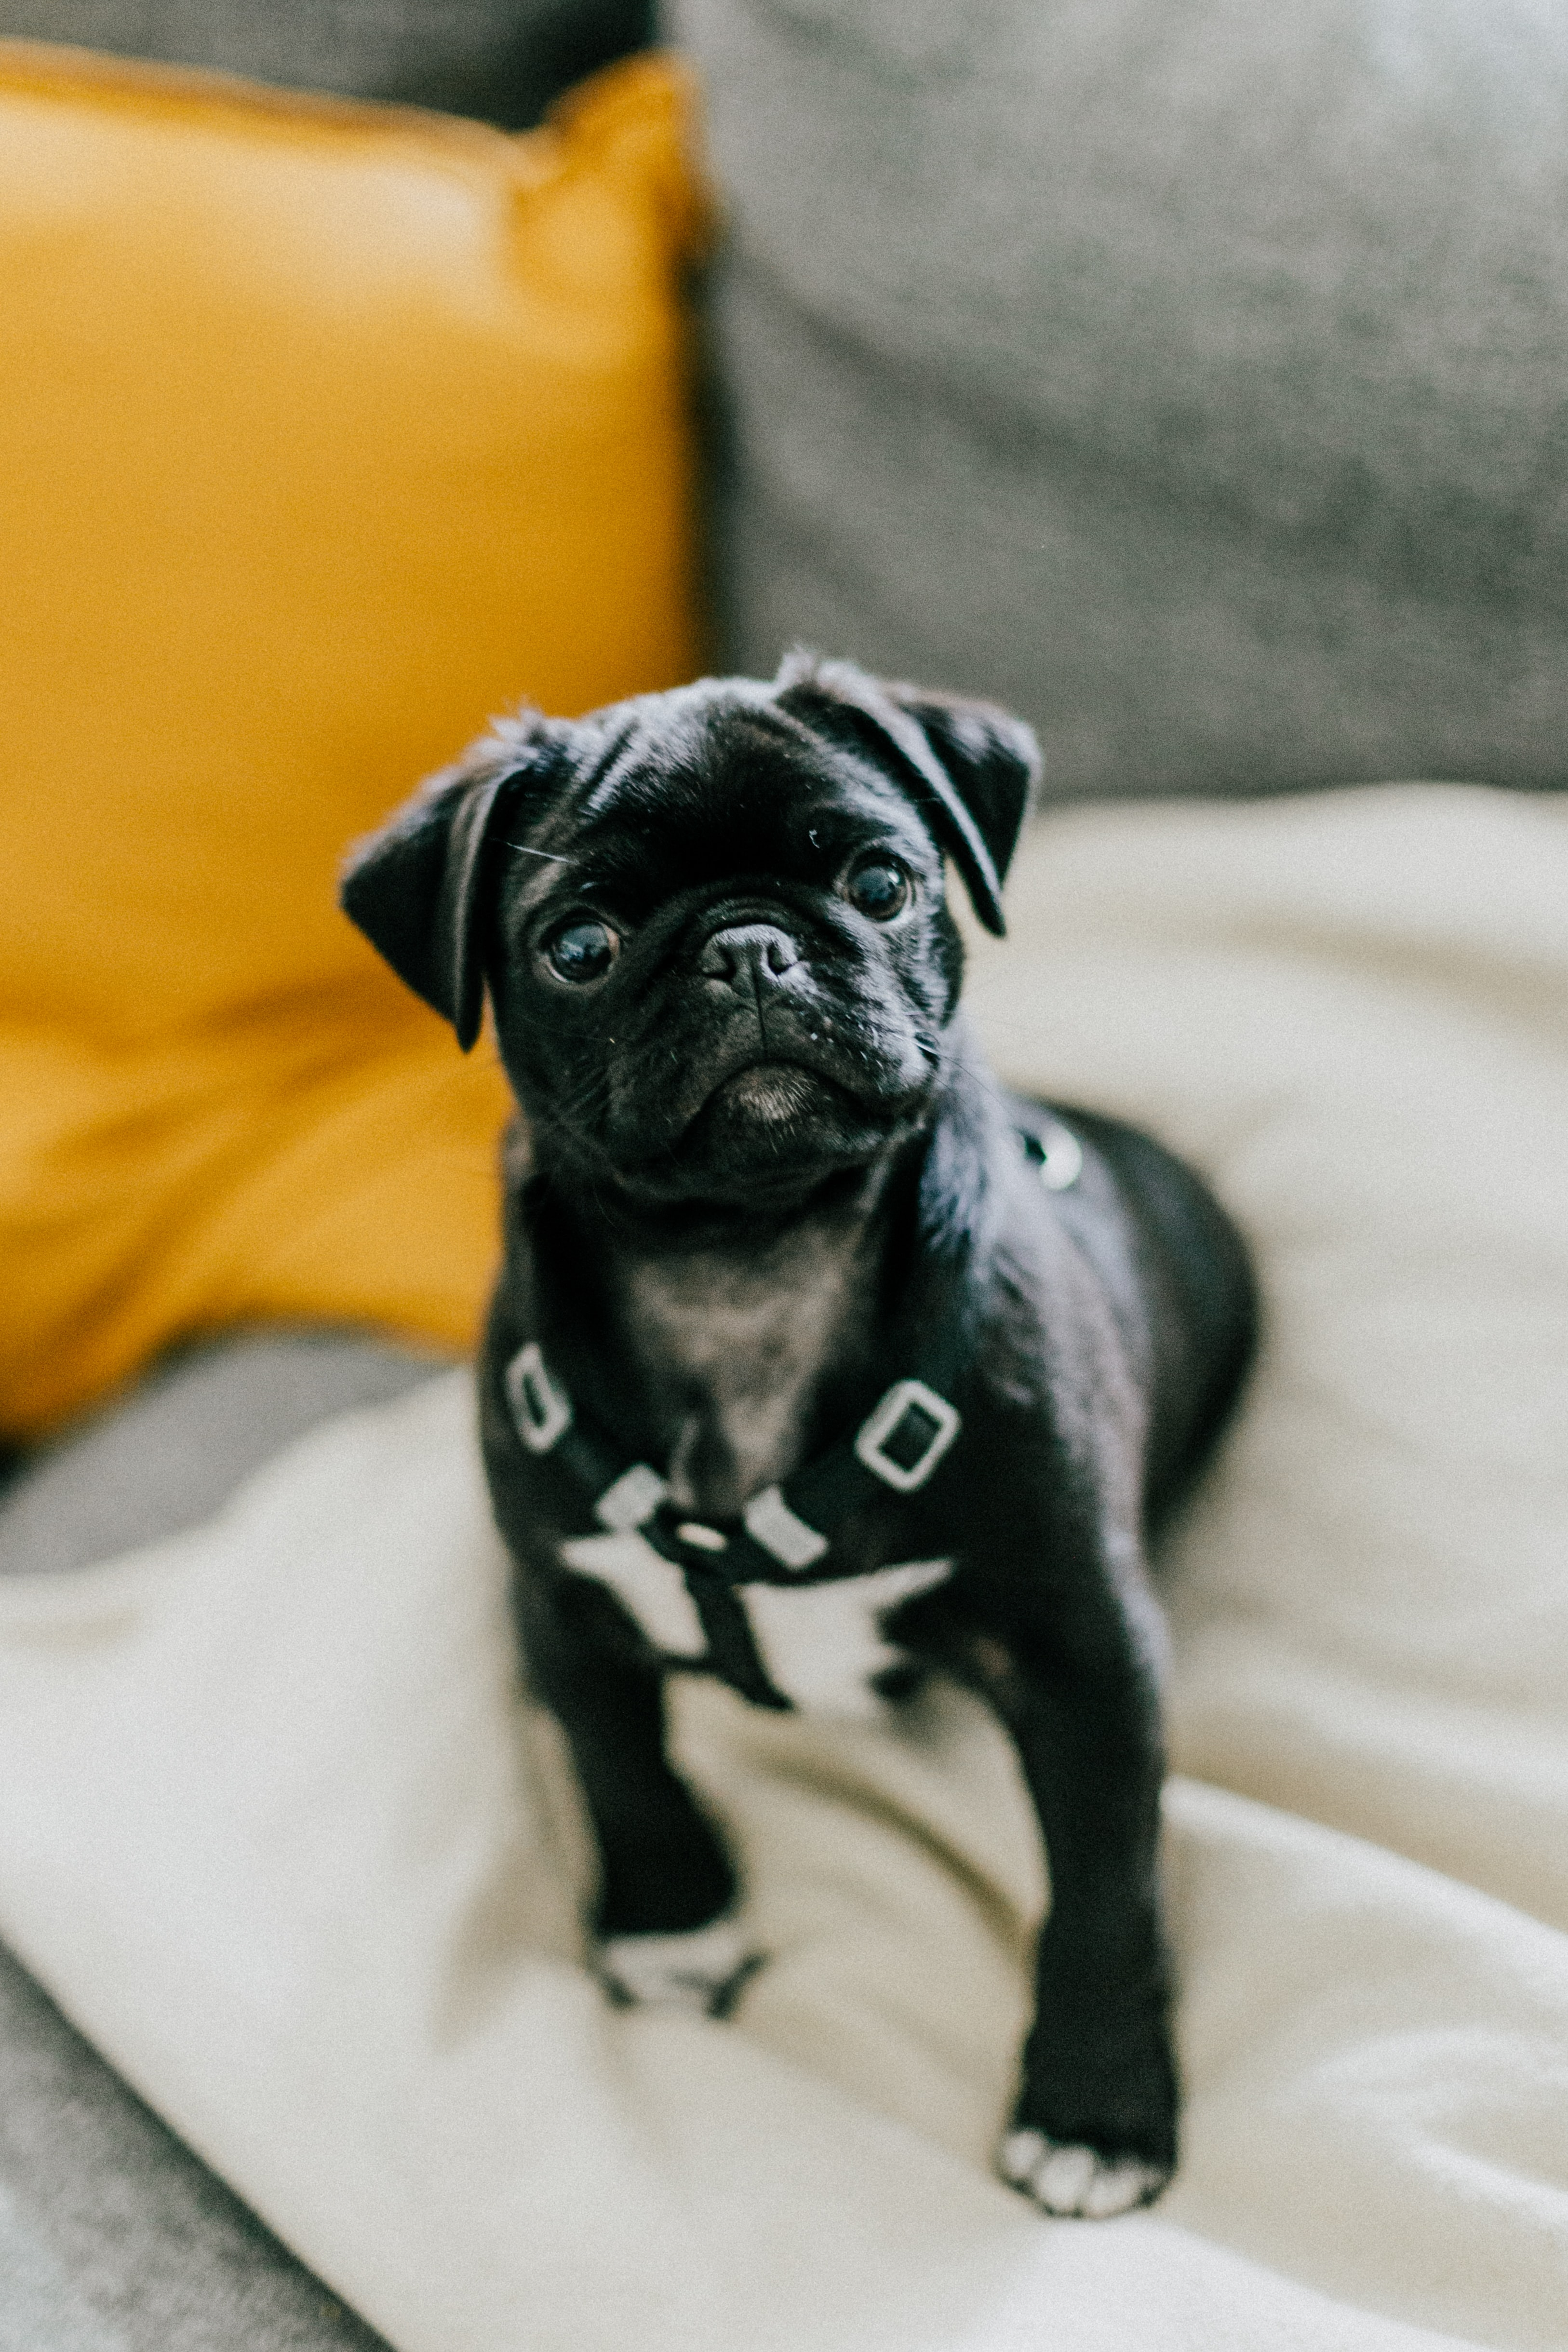 112227 download wallpaper Animals, Pug, Dog, Puppy, Pet screensavers and pictures for free